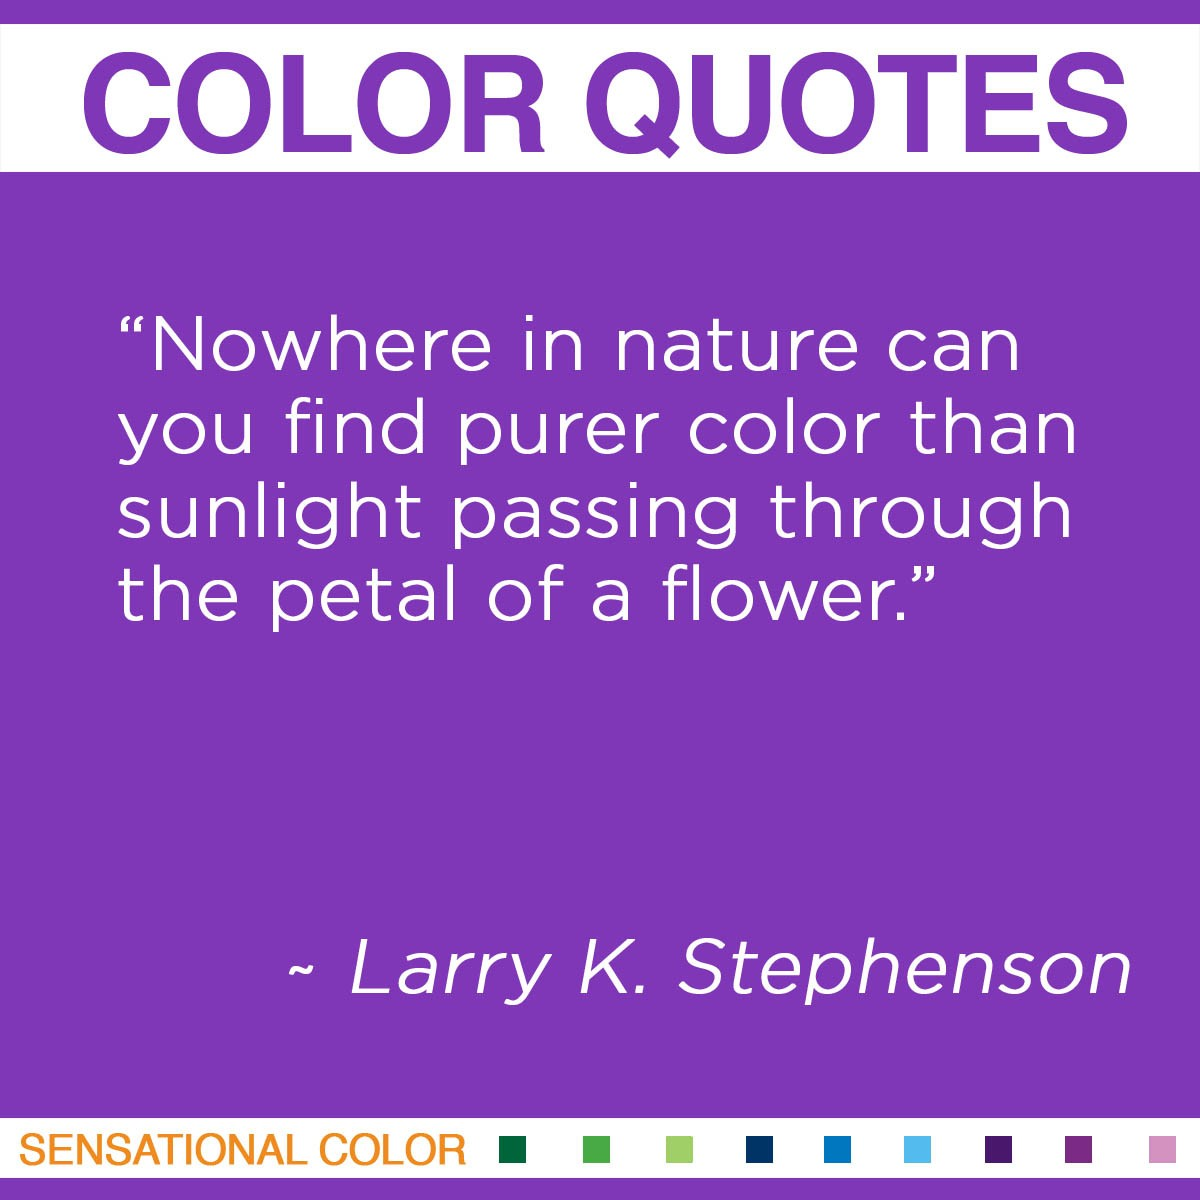 """Nowhere in nature can you find purer color than sunlight passing through the petal of a flower."" - Larry K. Stephenson"